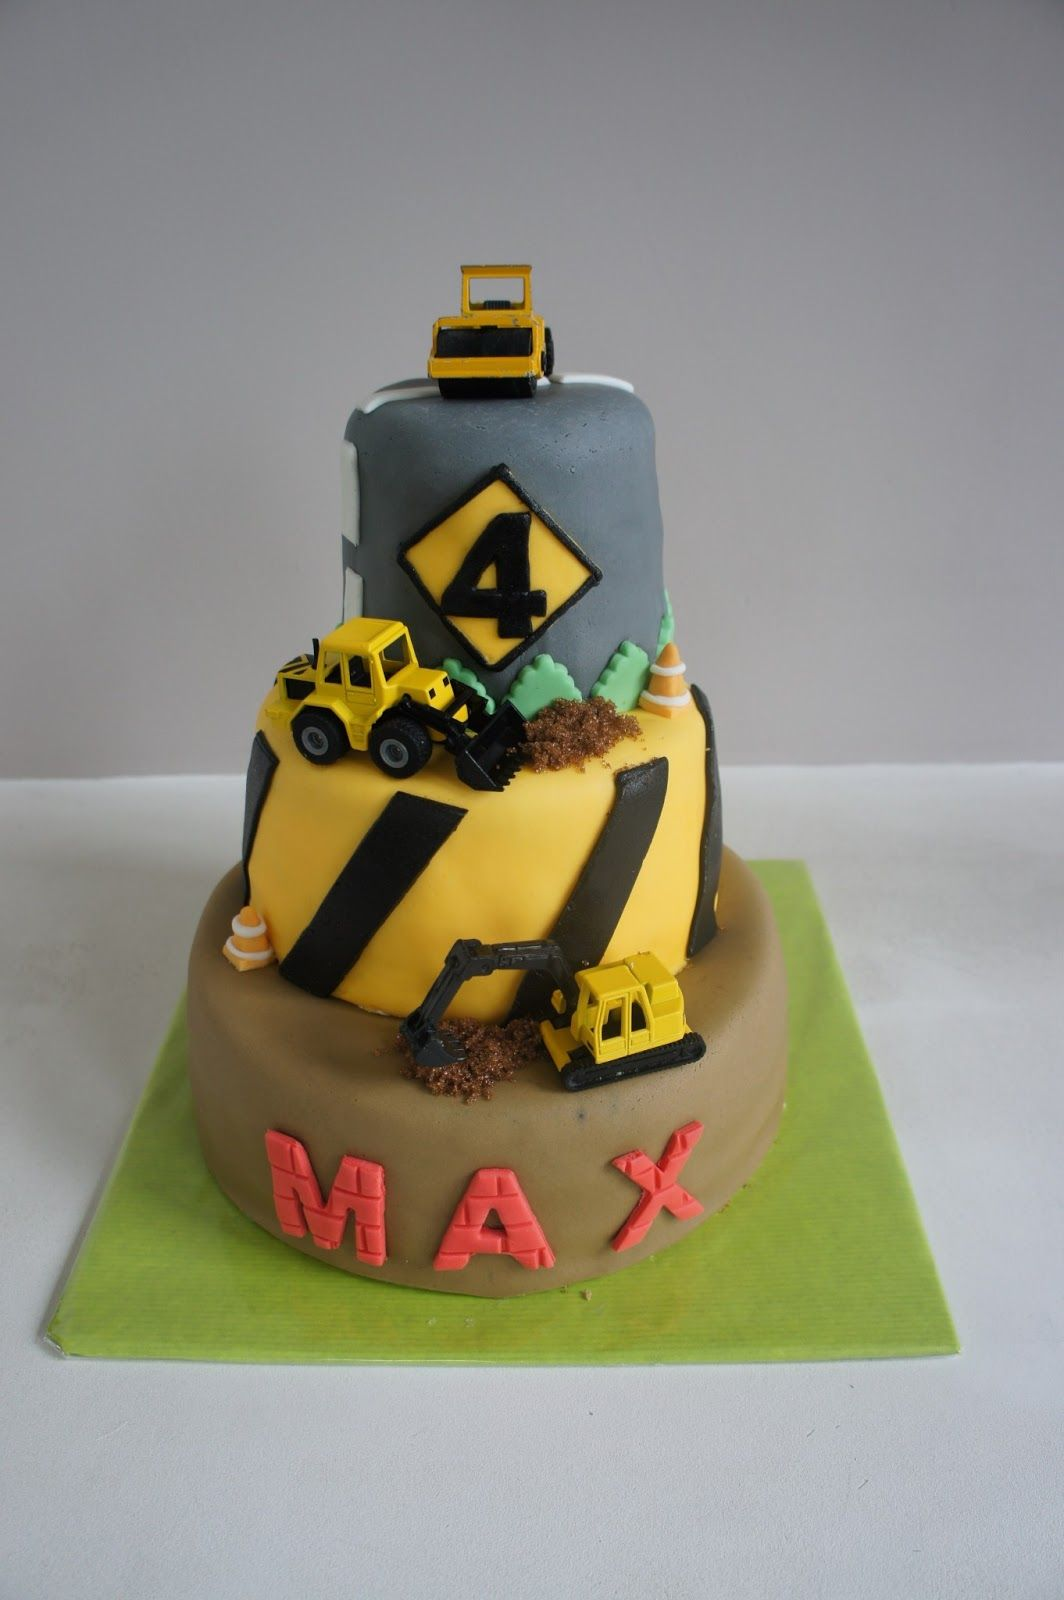 Construction cake for little Max, with his favorite trench